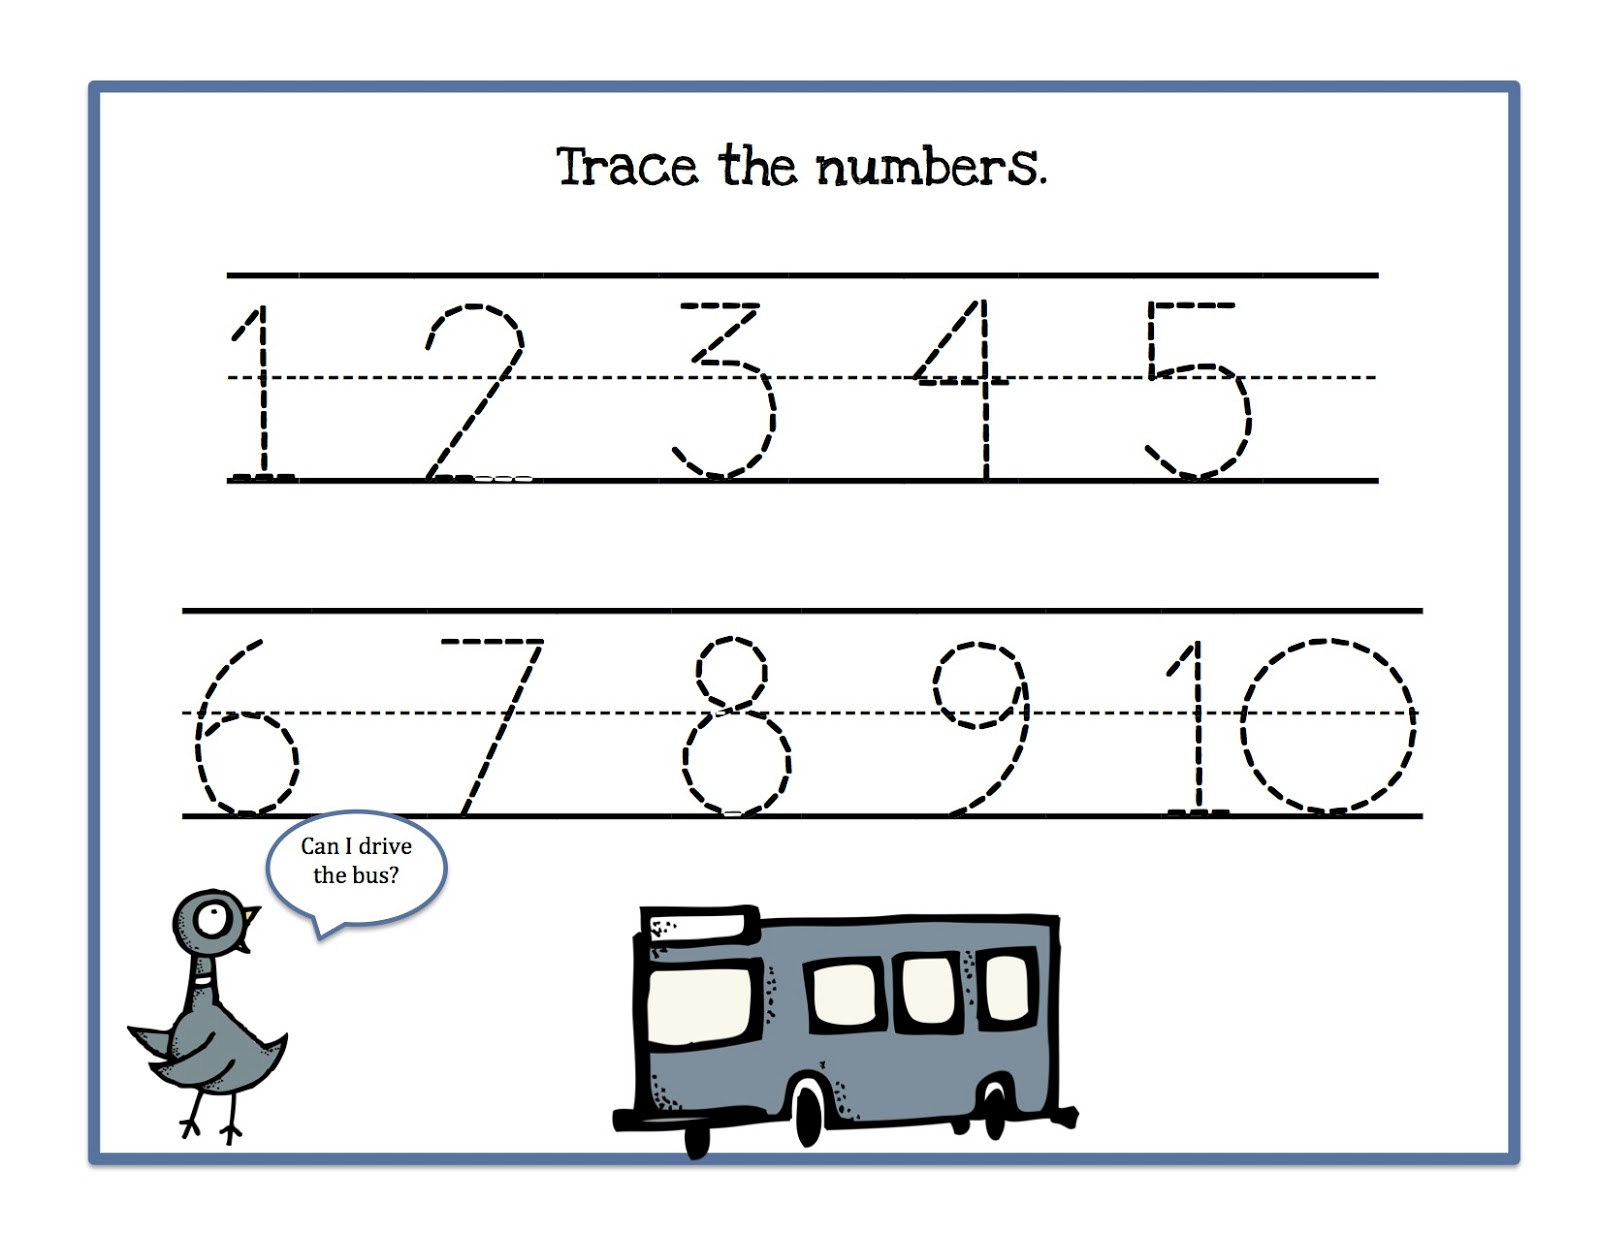 Free Worksheet Free Number Tracing Worksheets 1-10 free number tracing worksheets 1 10 photos beatlesblogcarnival worksheet 13241937 kindergarten number